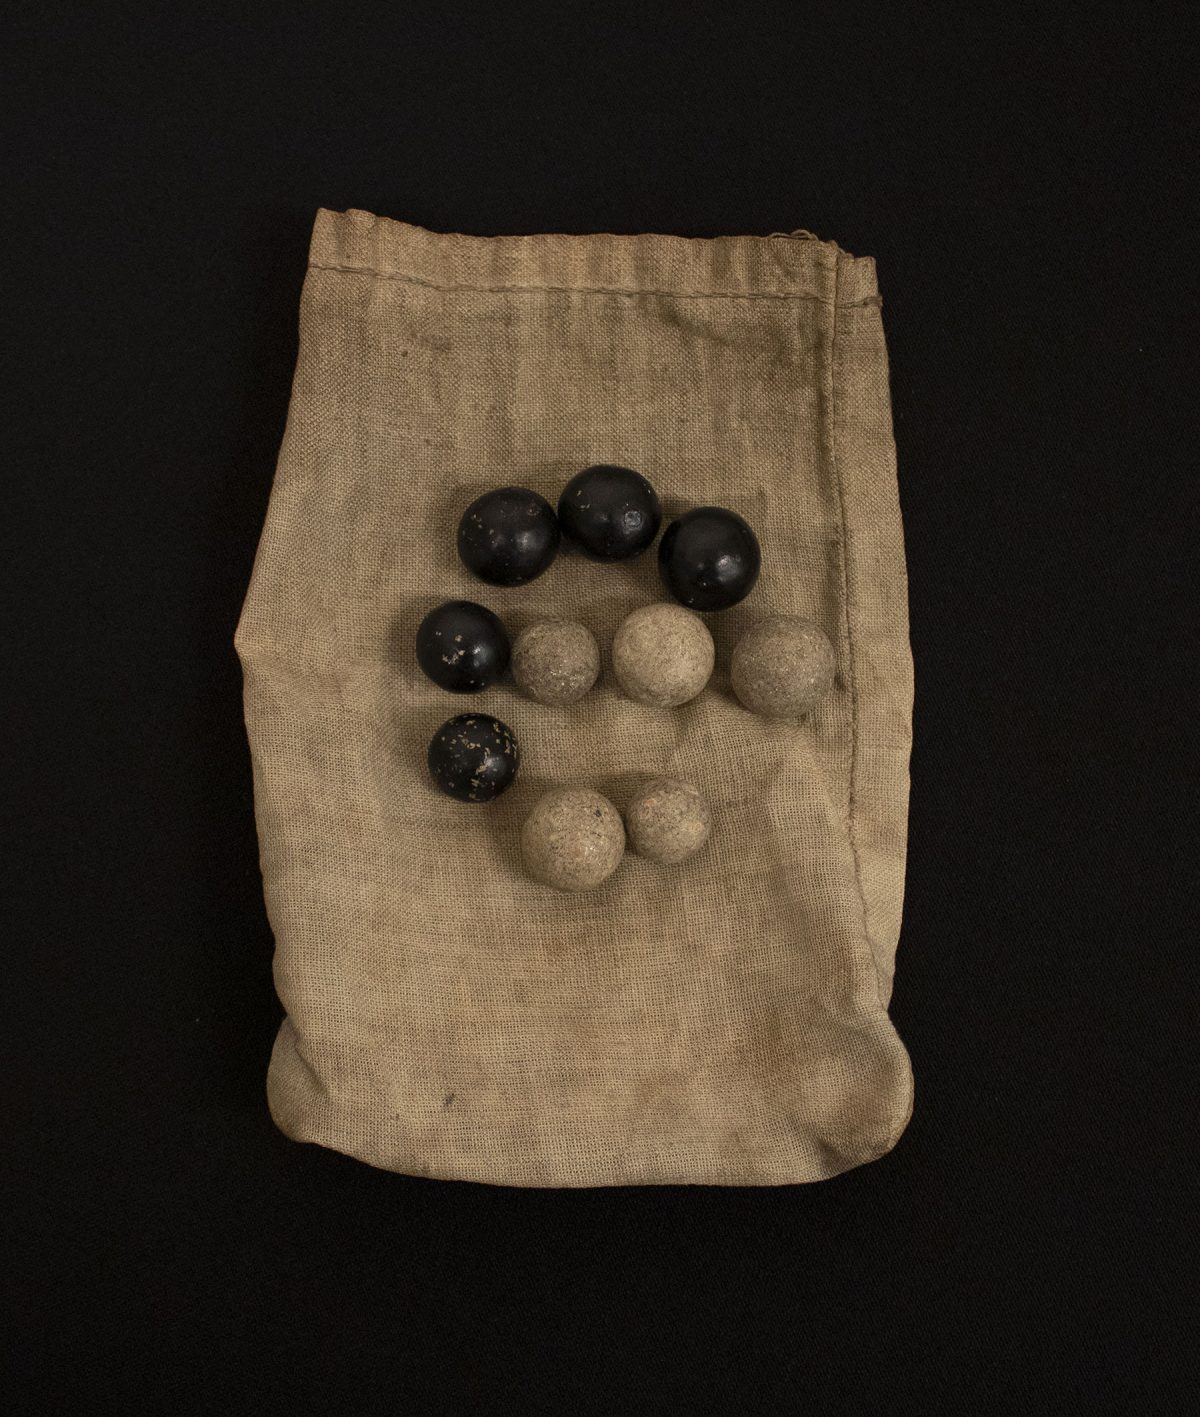 Ballot Balls and Bag from the Sons of Italy, Umberto Primo Lodge No. 750 (Susquehanna, PA) wood, paint and fiber undated 2019.12.0004 Gift of the New Jersey Grand Lodge, Order of the Sons of Italy